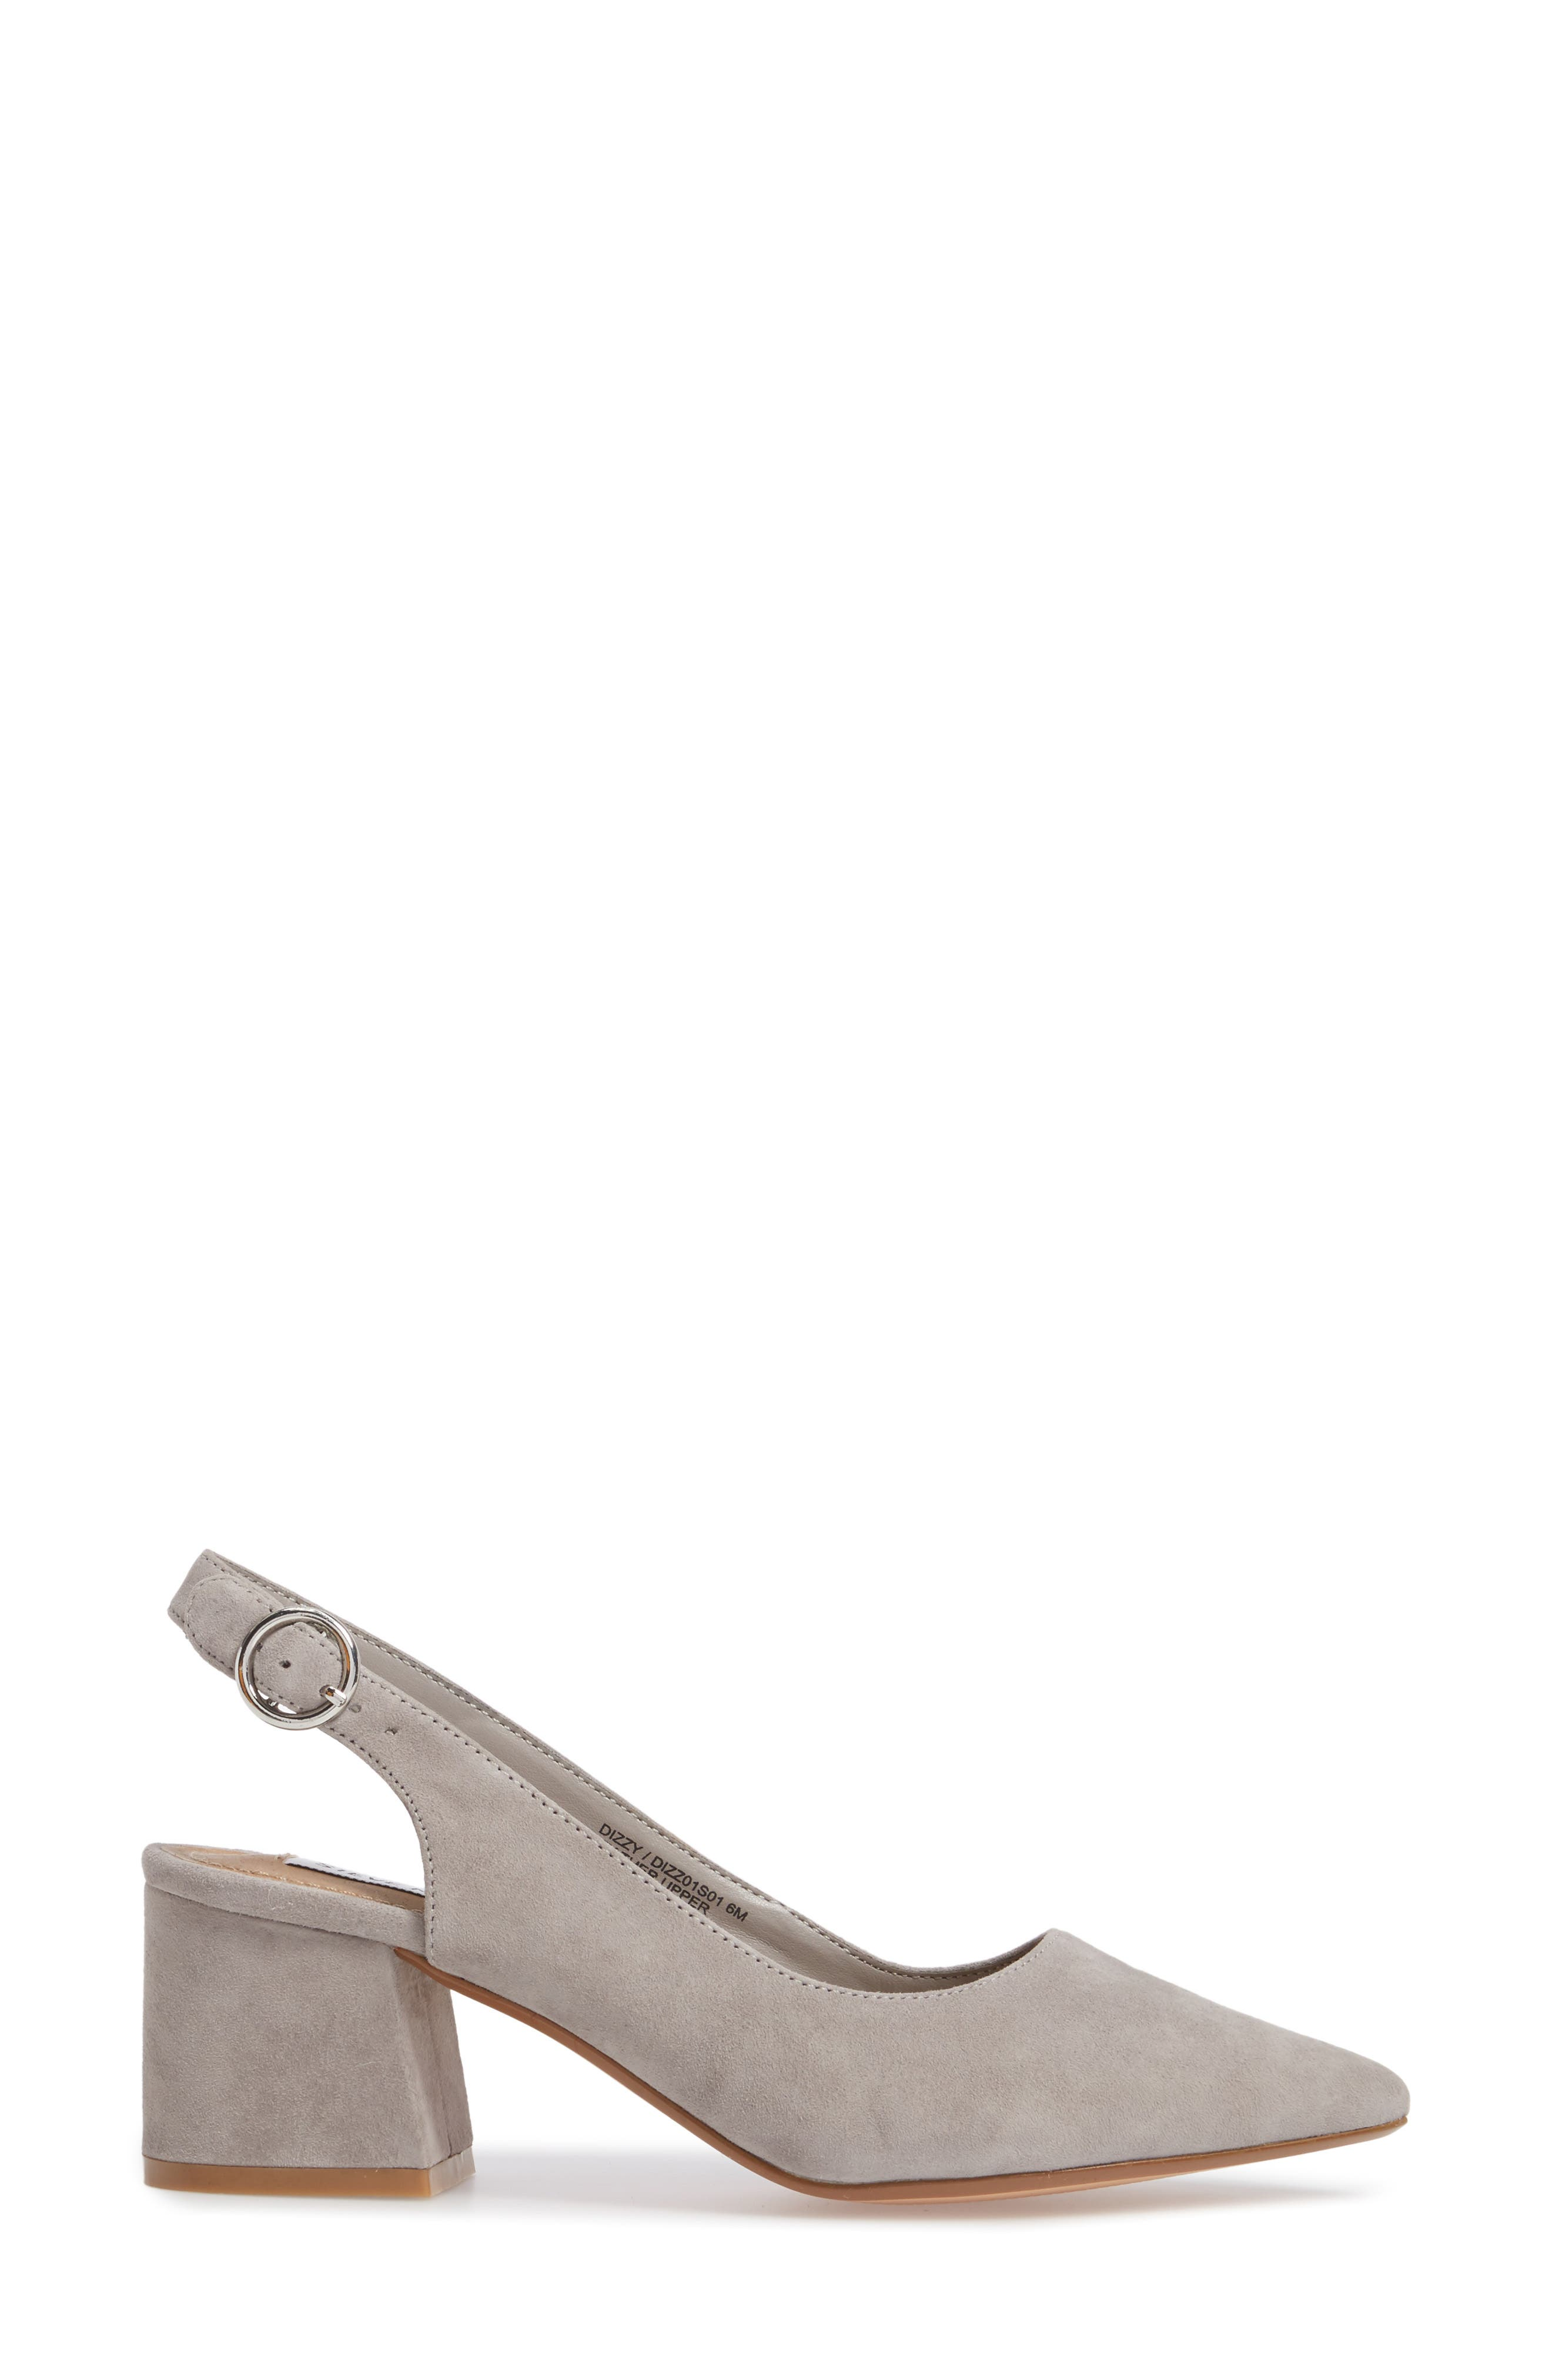 Dizzy Slingback Pump,                             Alternate thumbnail 3, color,                             Grey Suede